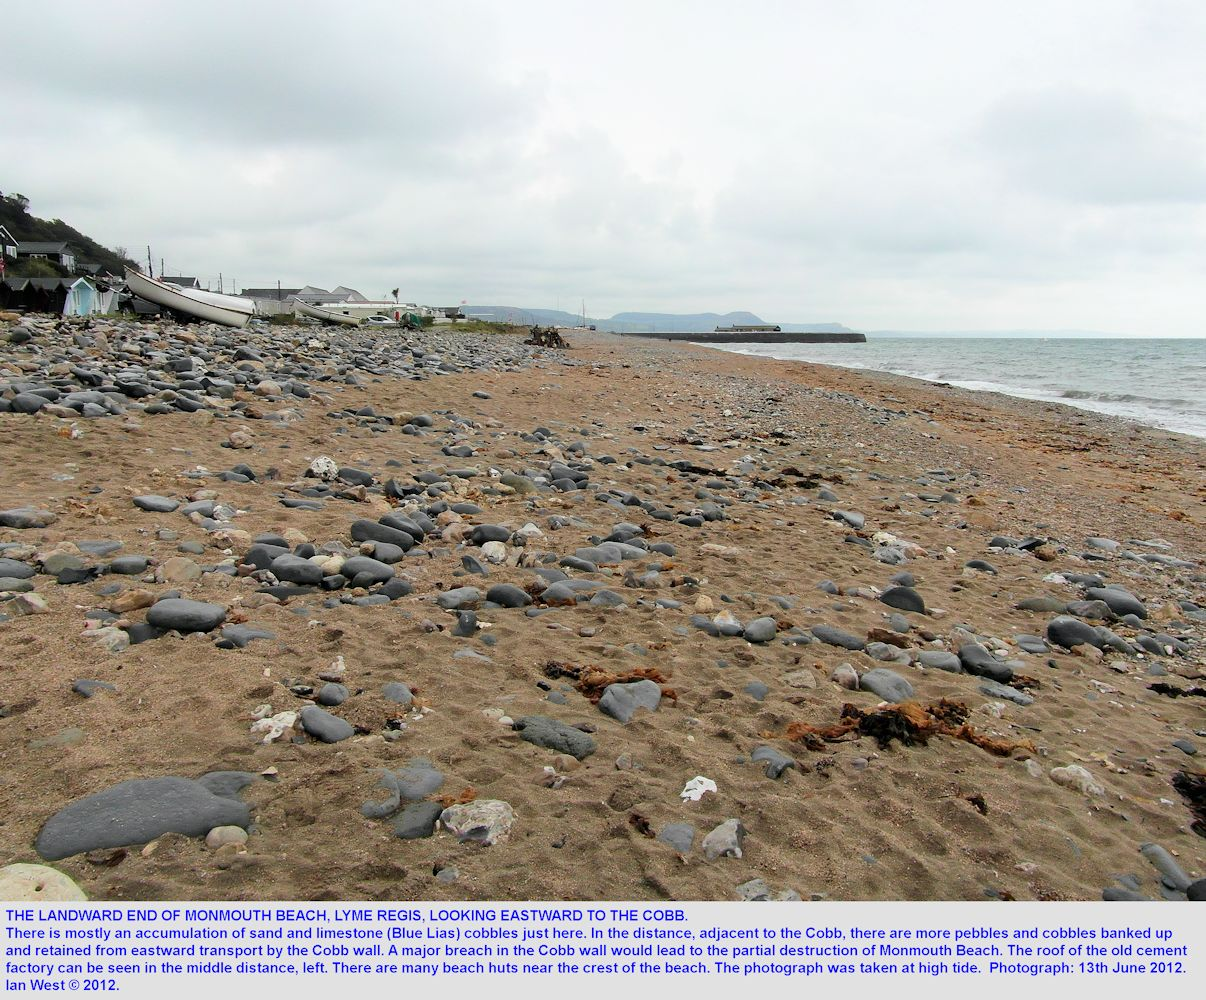 A view eastward of Monmouth Beach looking towards the Cobb, Lyme Regis, Dorset, 13th June 2012